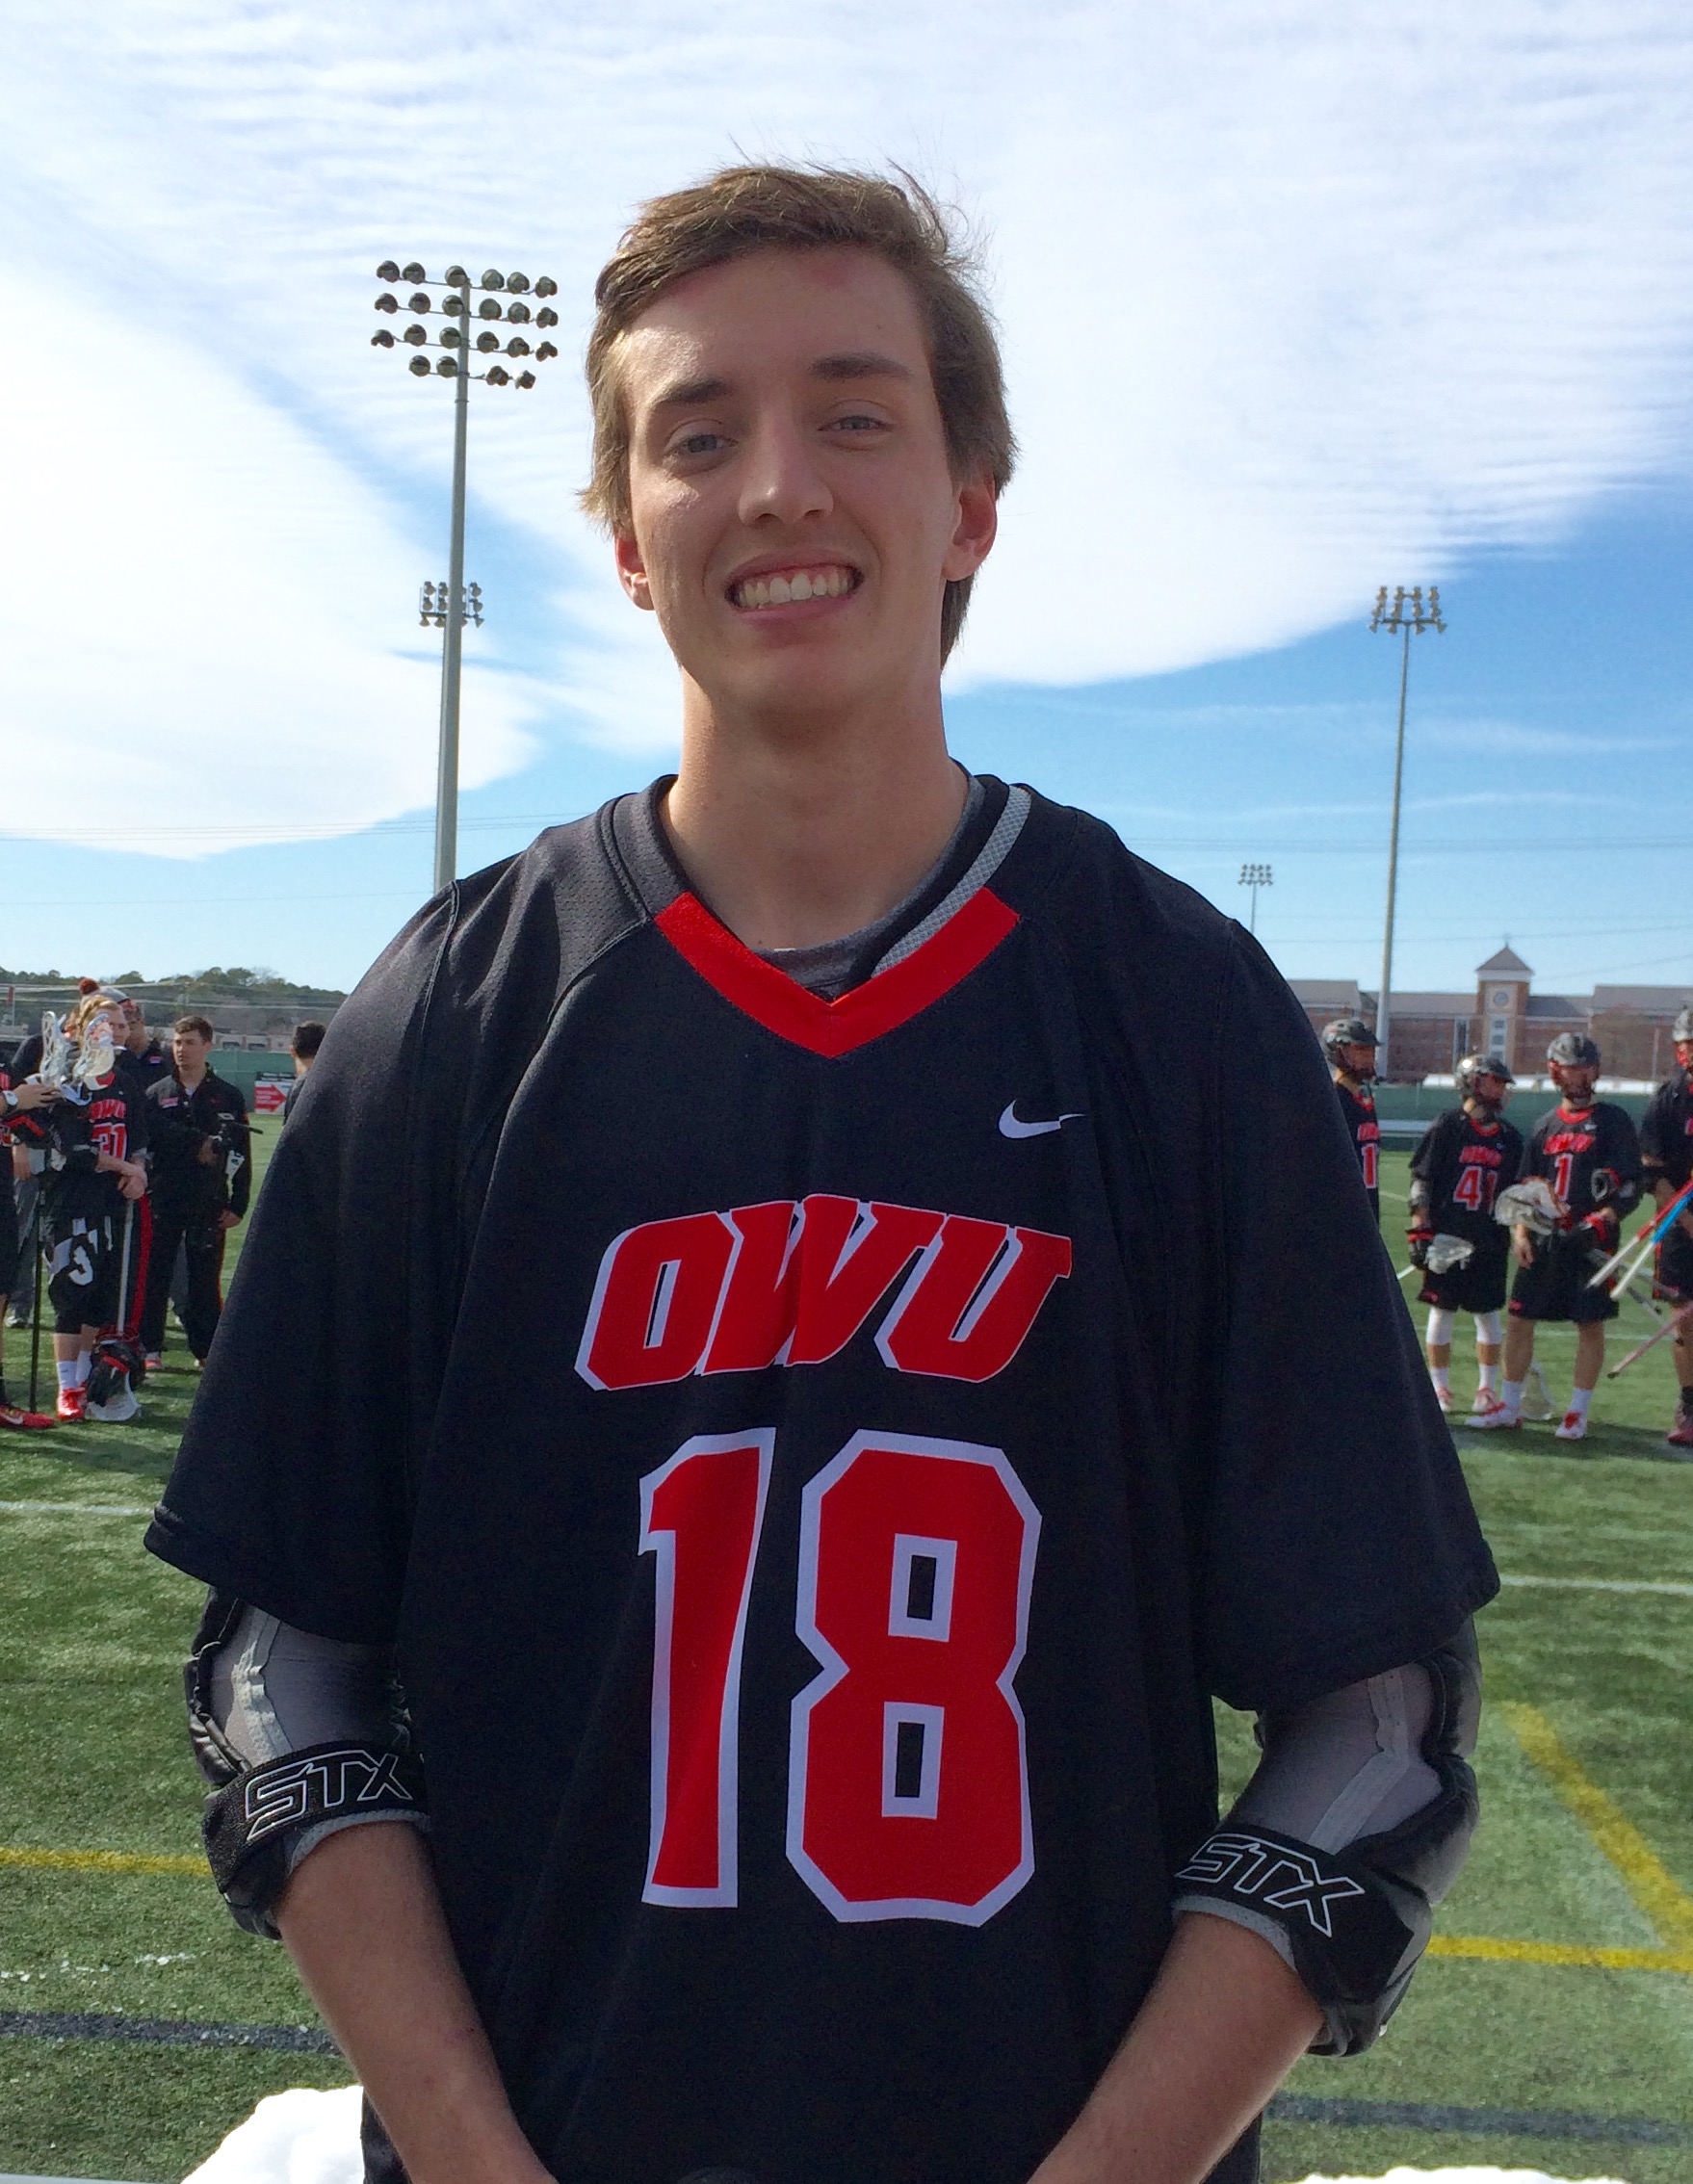 Jeb Beeghly (OWU '18)